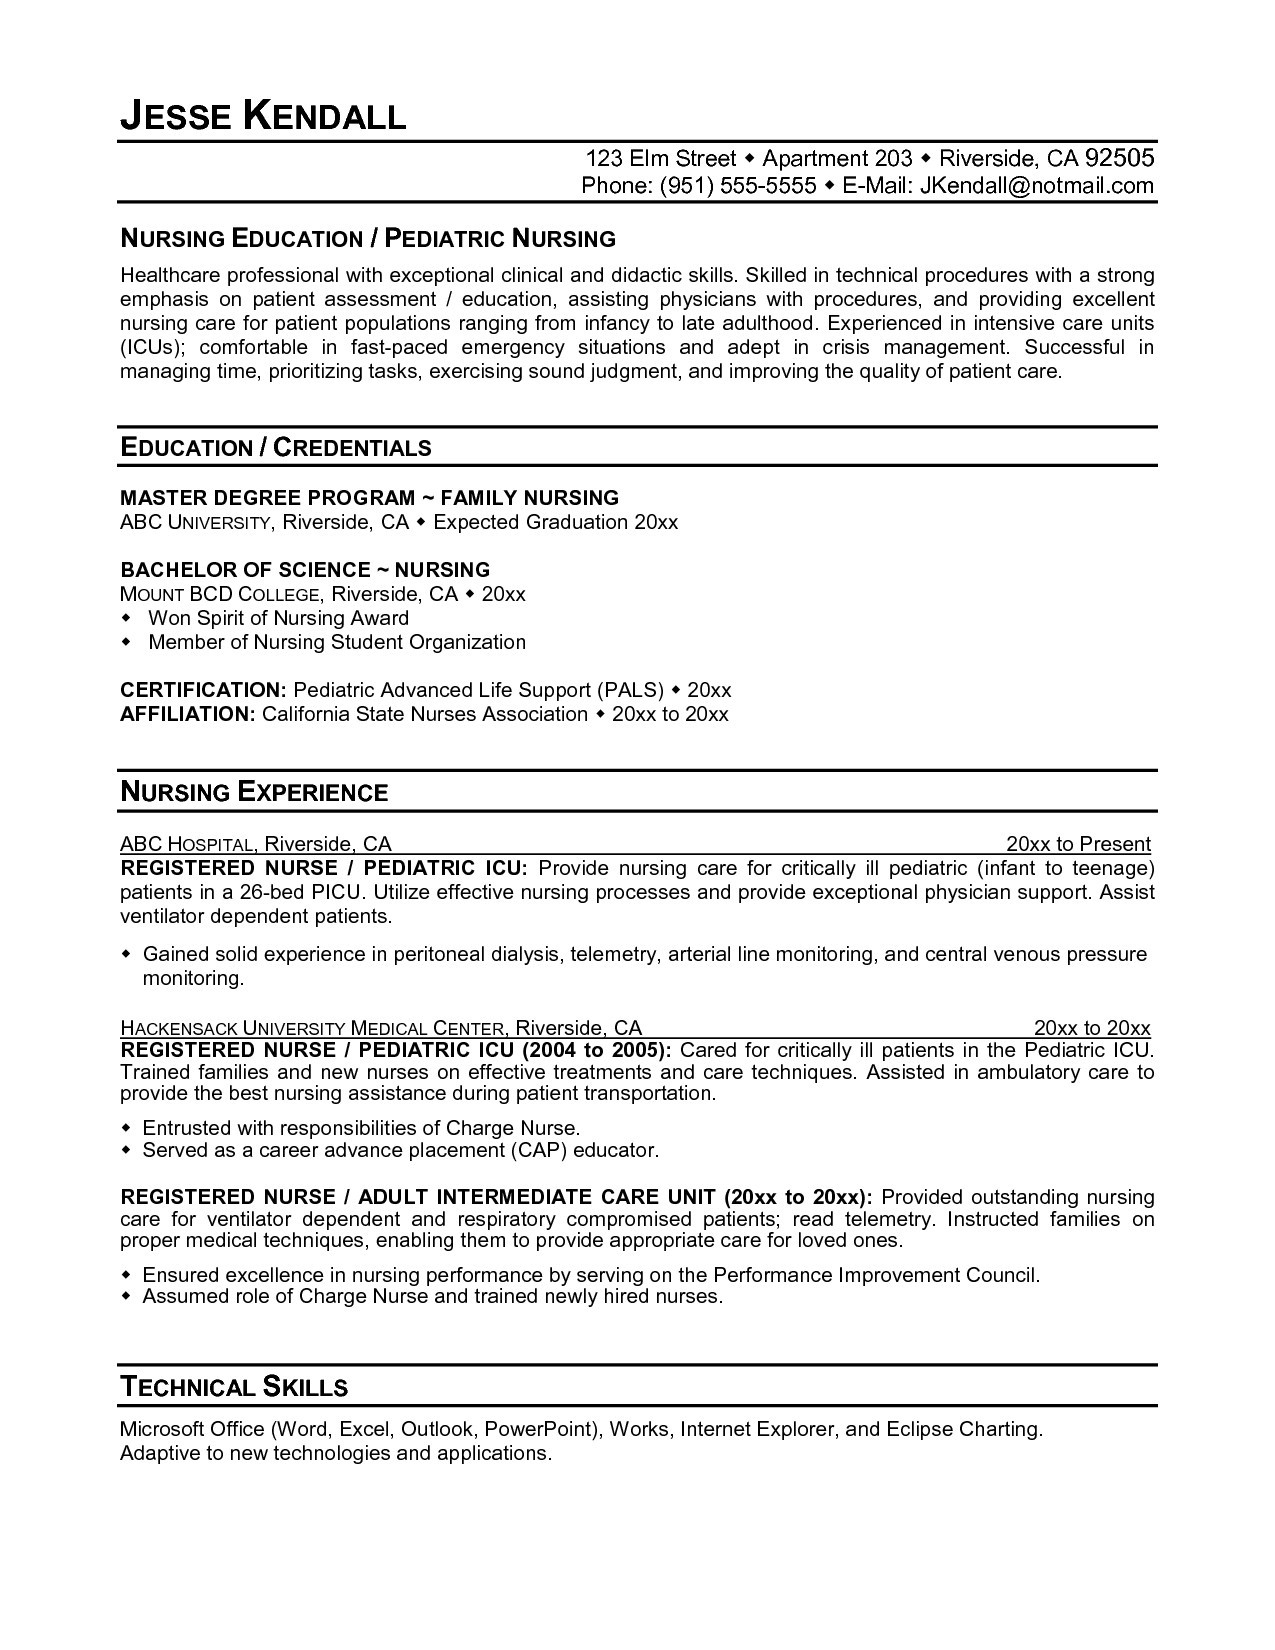 Nurse Practitioner Resume Examples - Nursing Student Resume Template Best 38 Best Nurse Practitioner